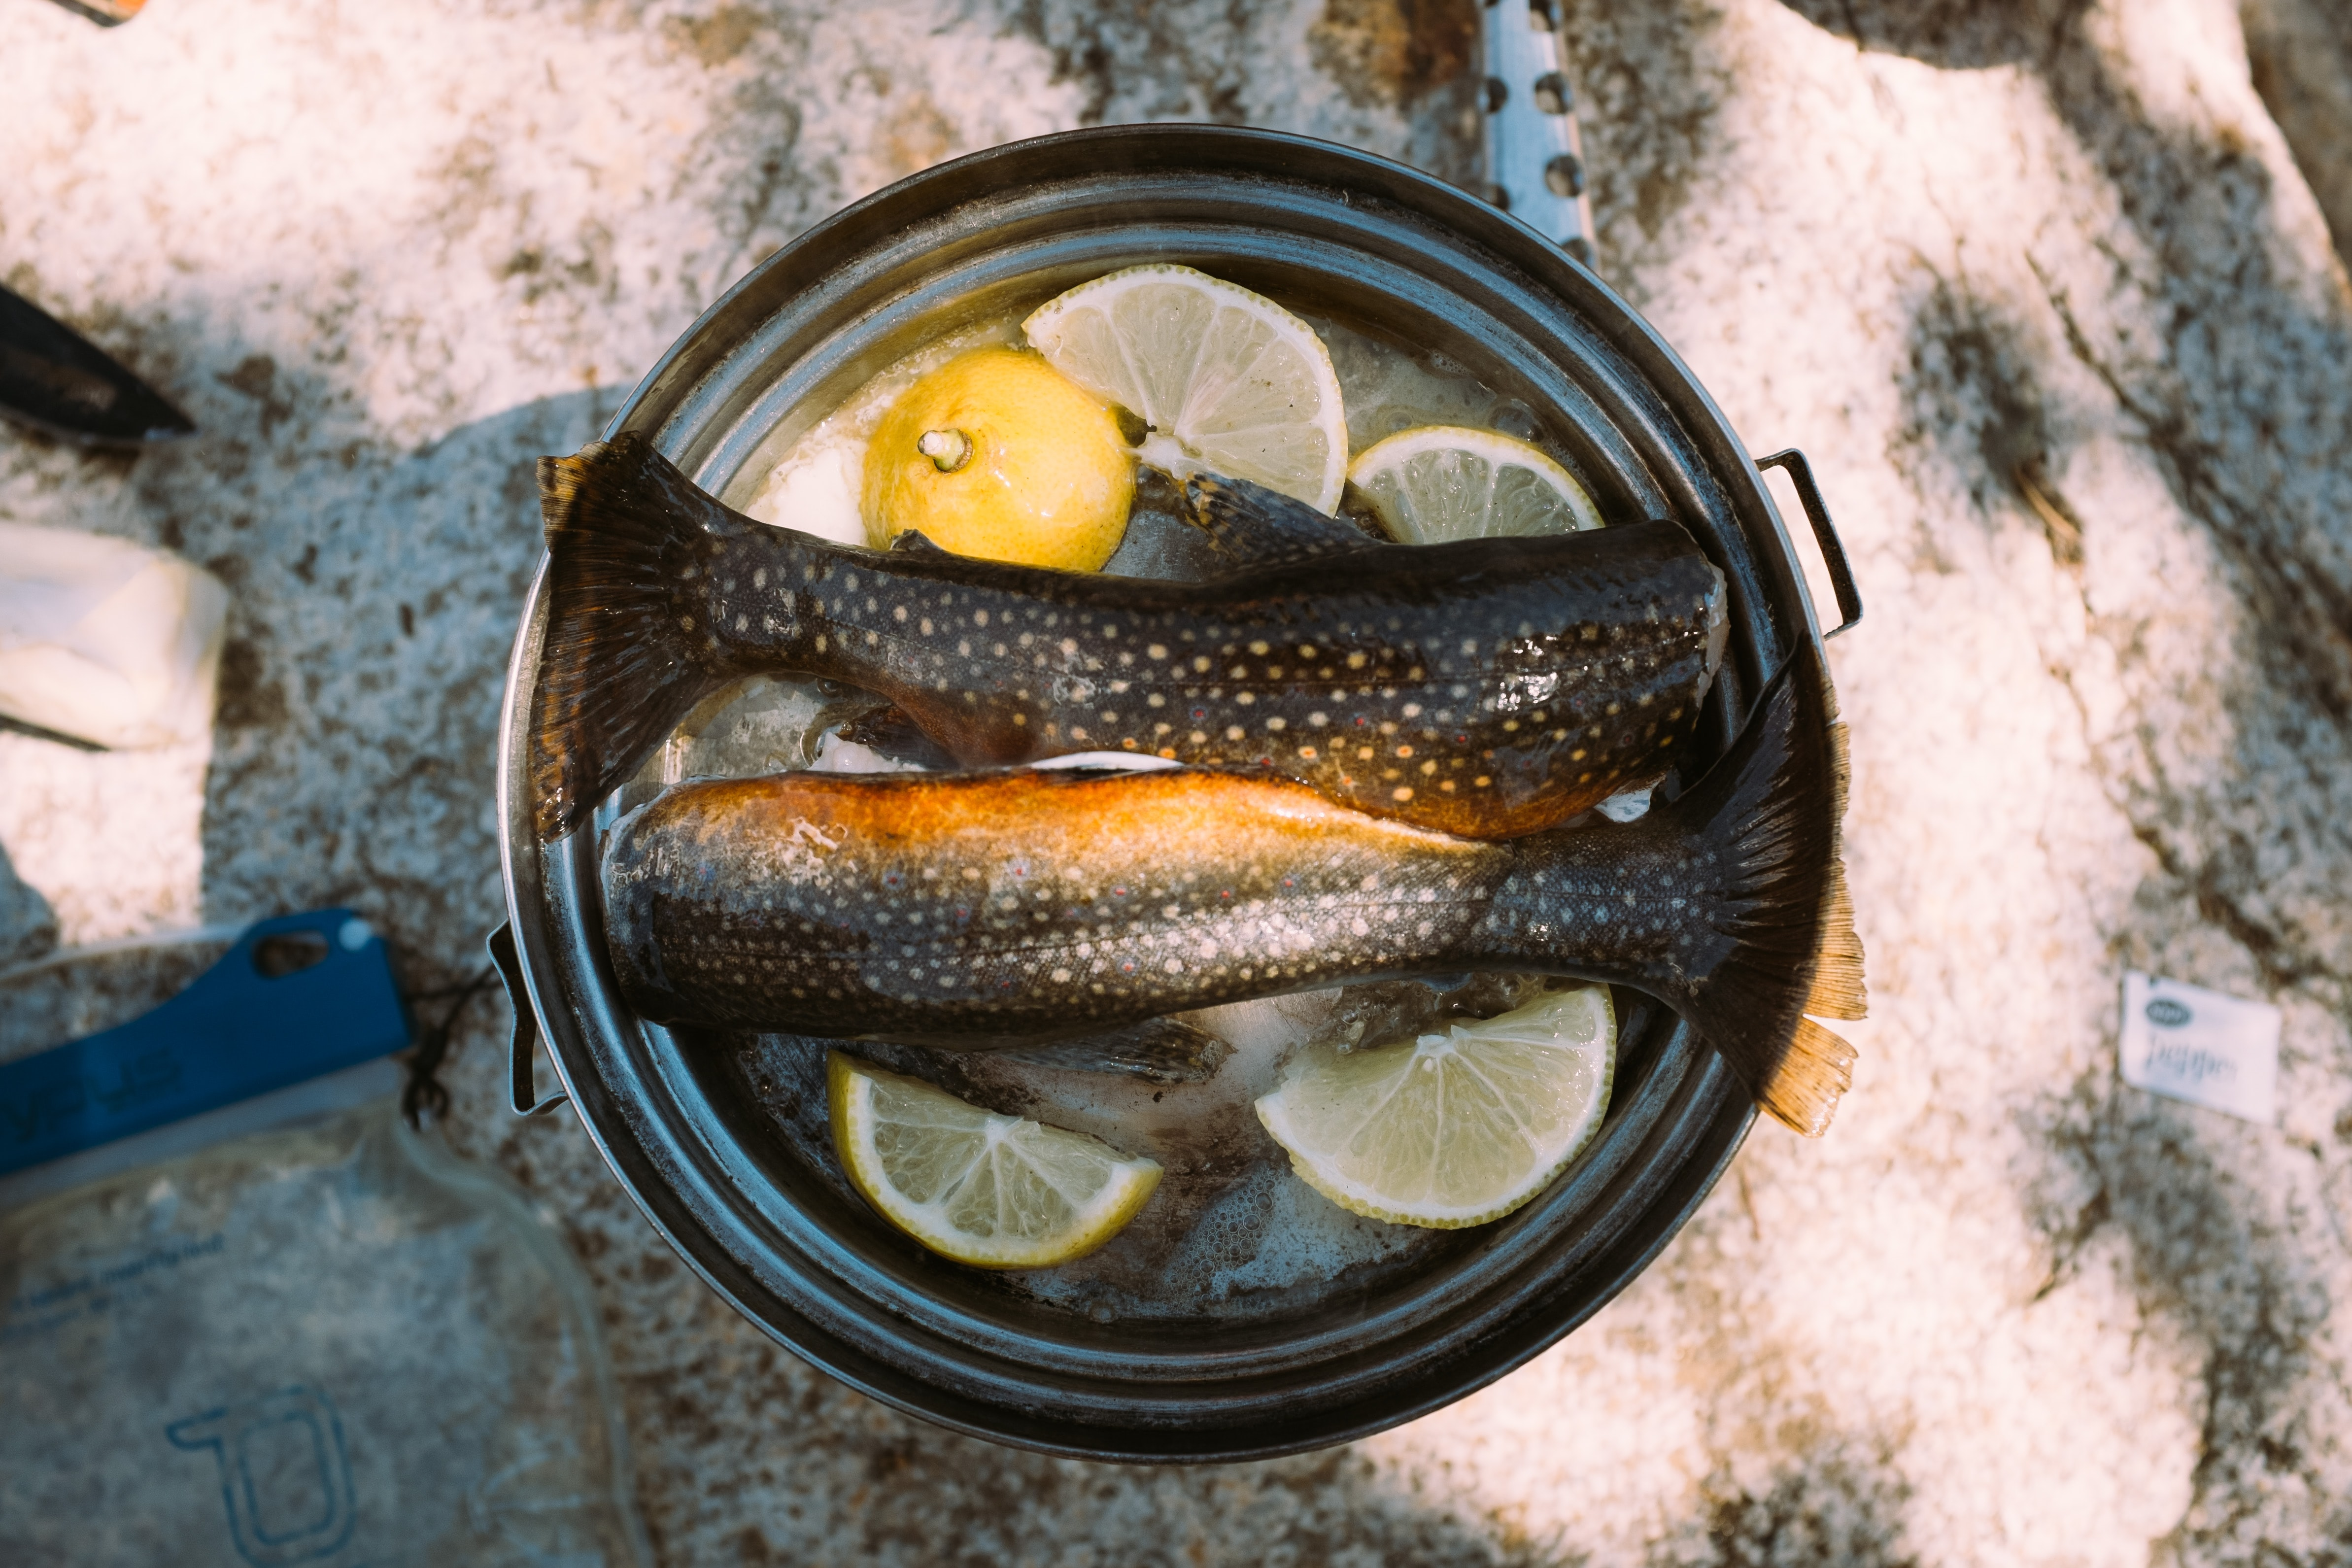 Two pieces of trout and pieces of lemon in a pan